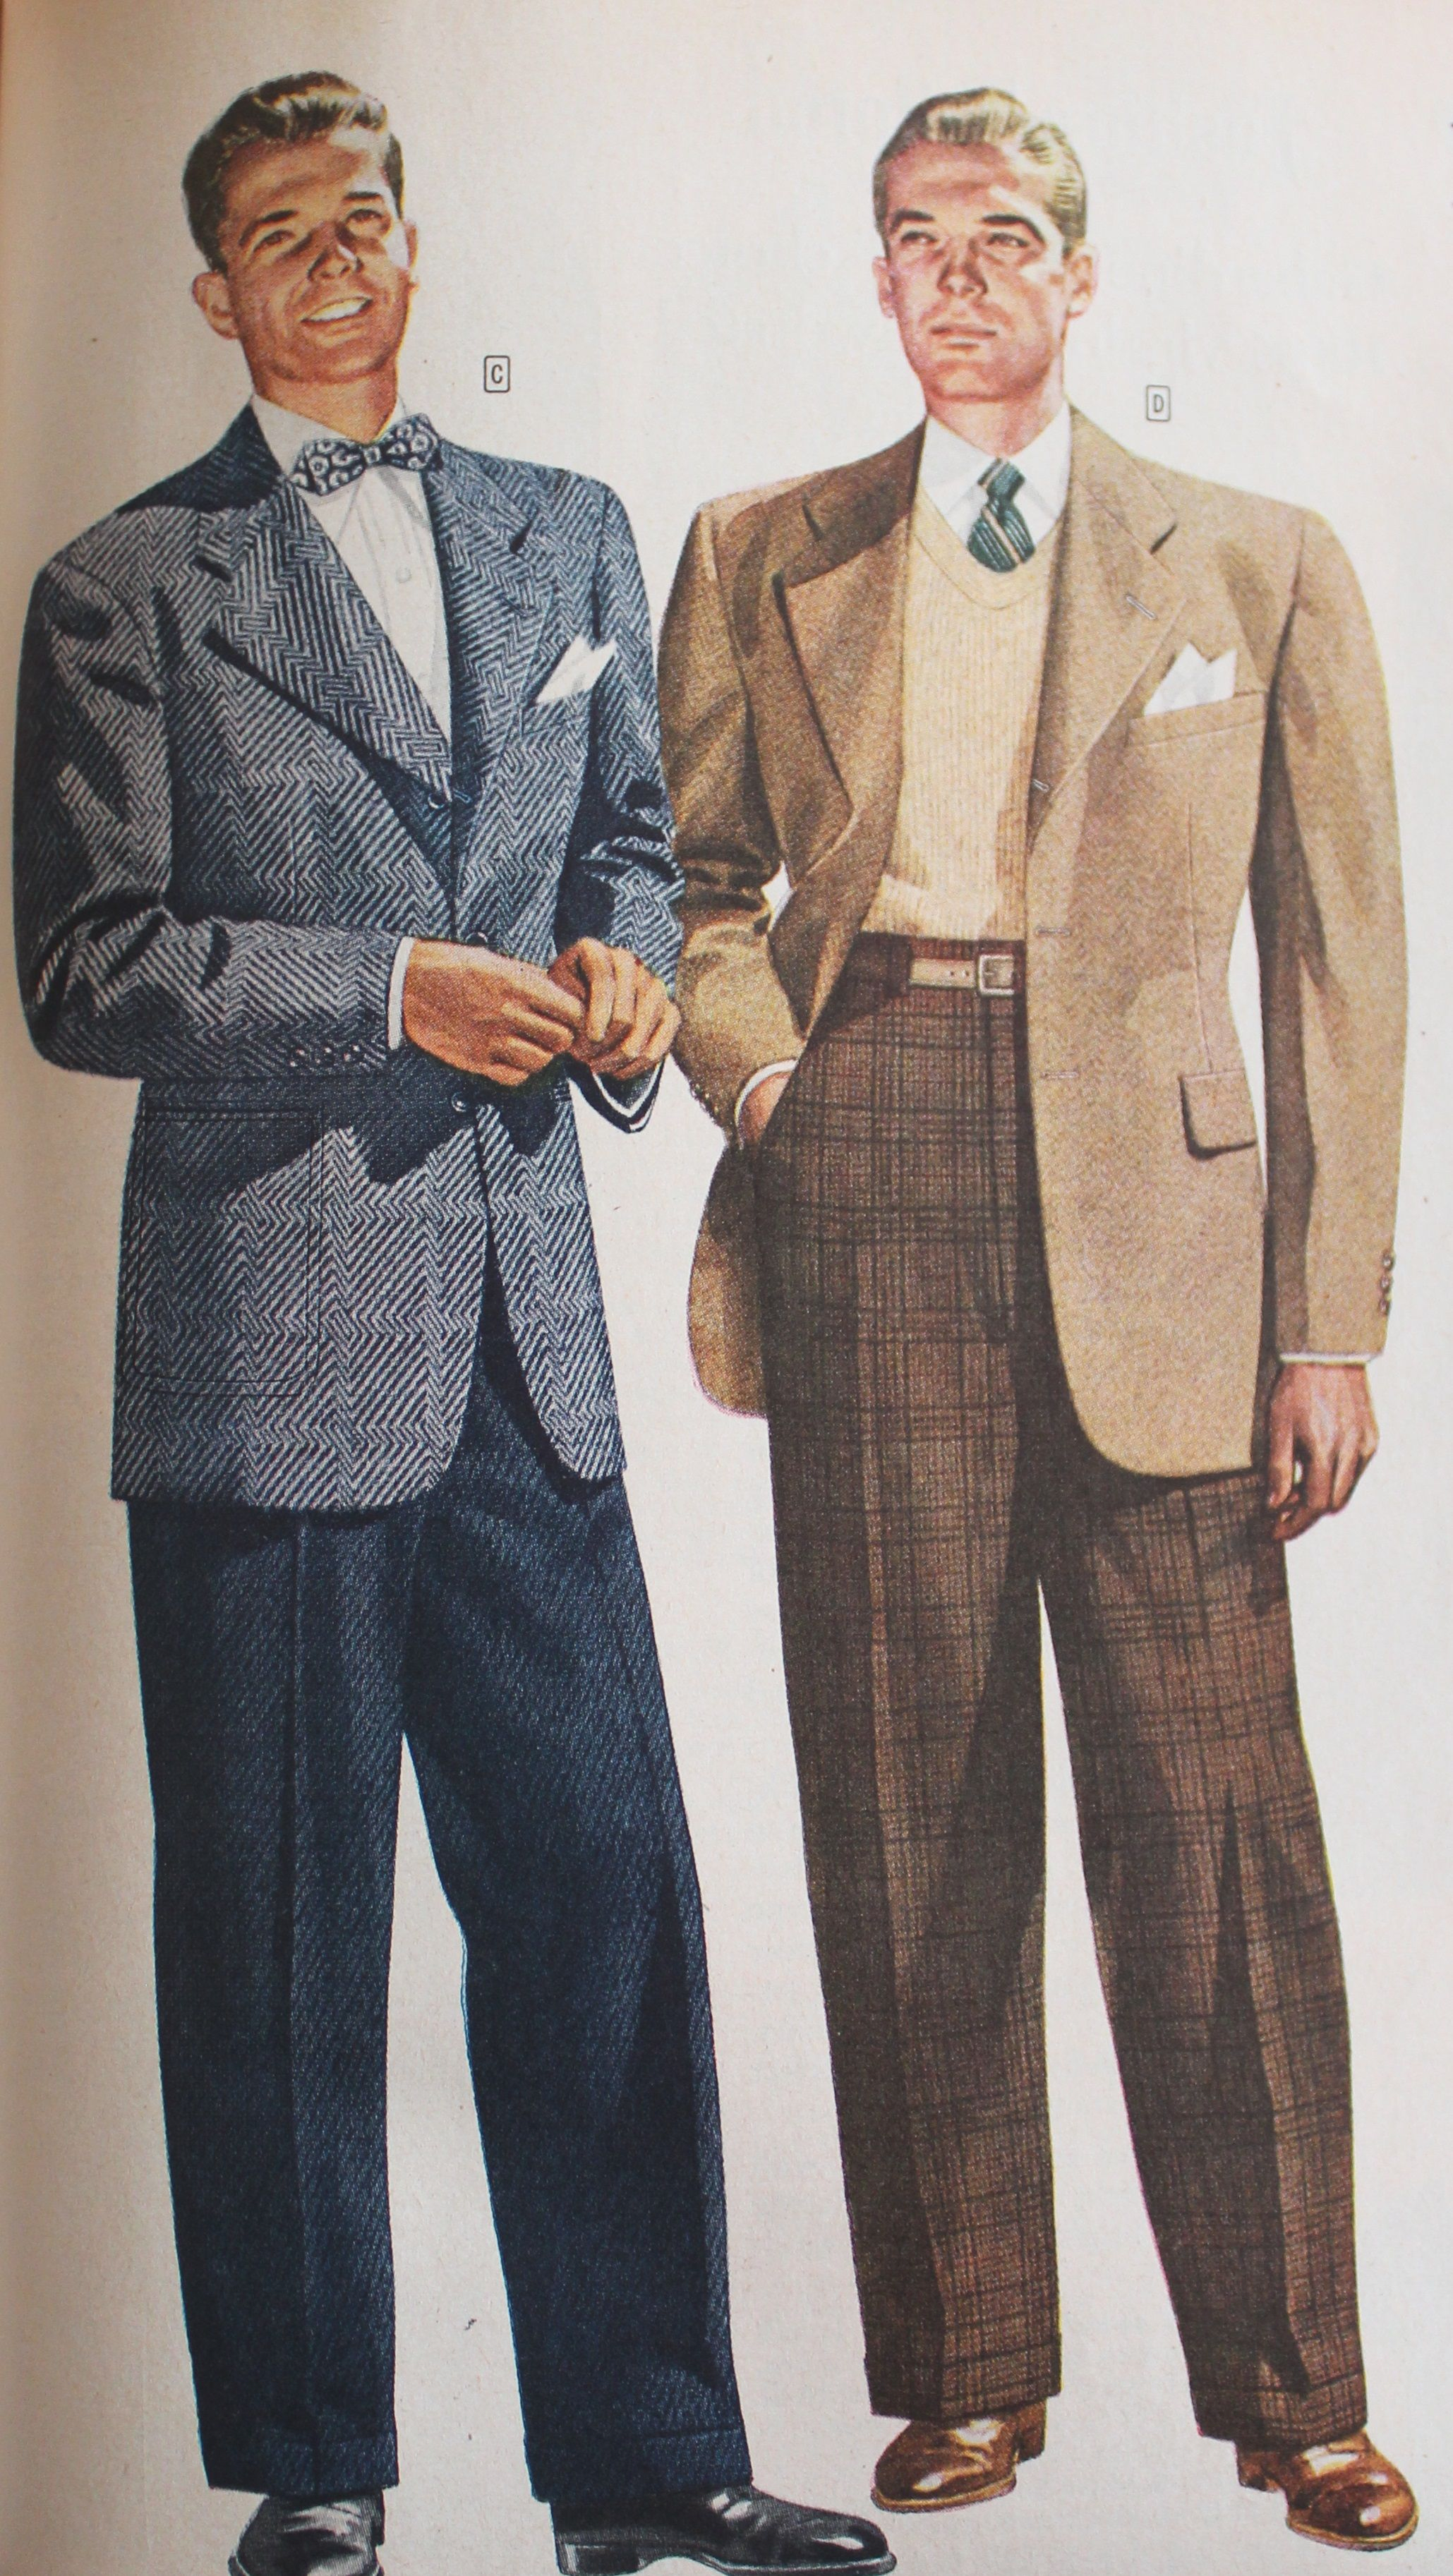 aede291fb869 Detailed 1940s men s fashion history for everyday man. Business suits